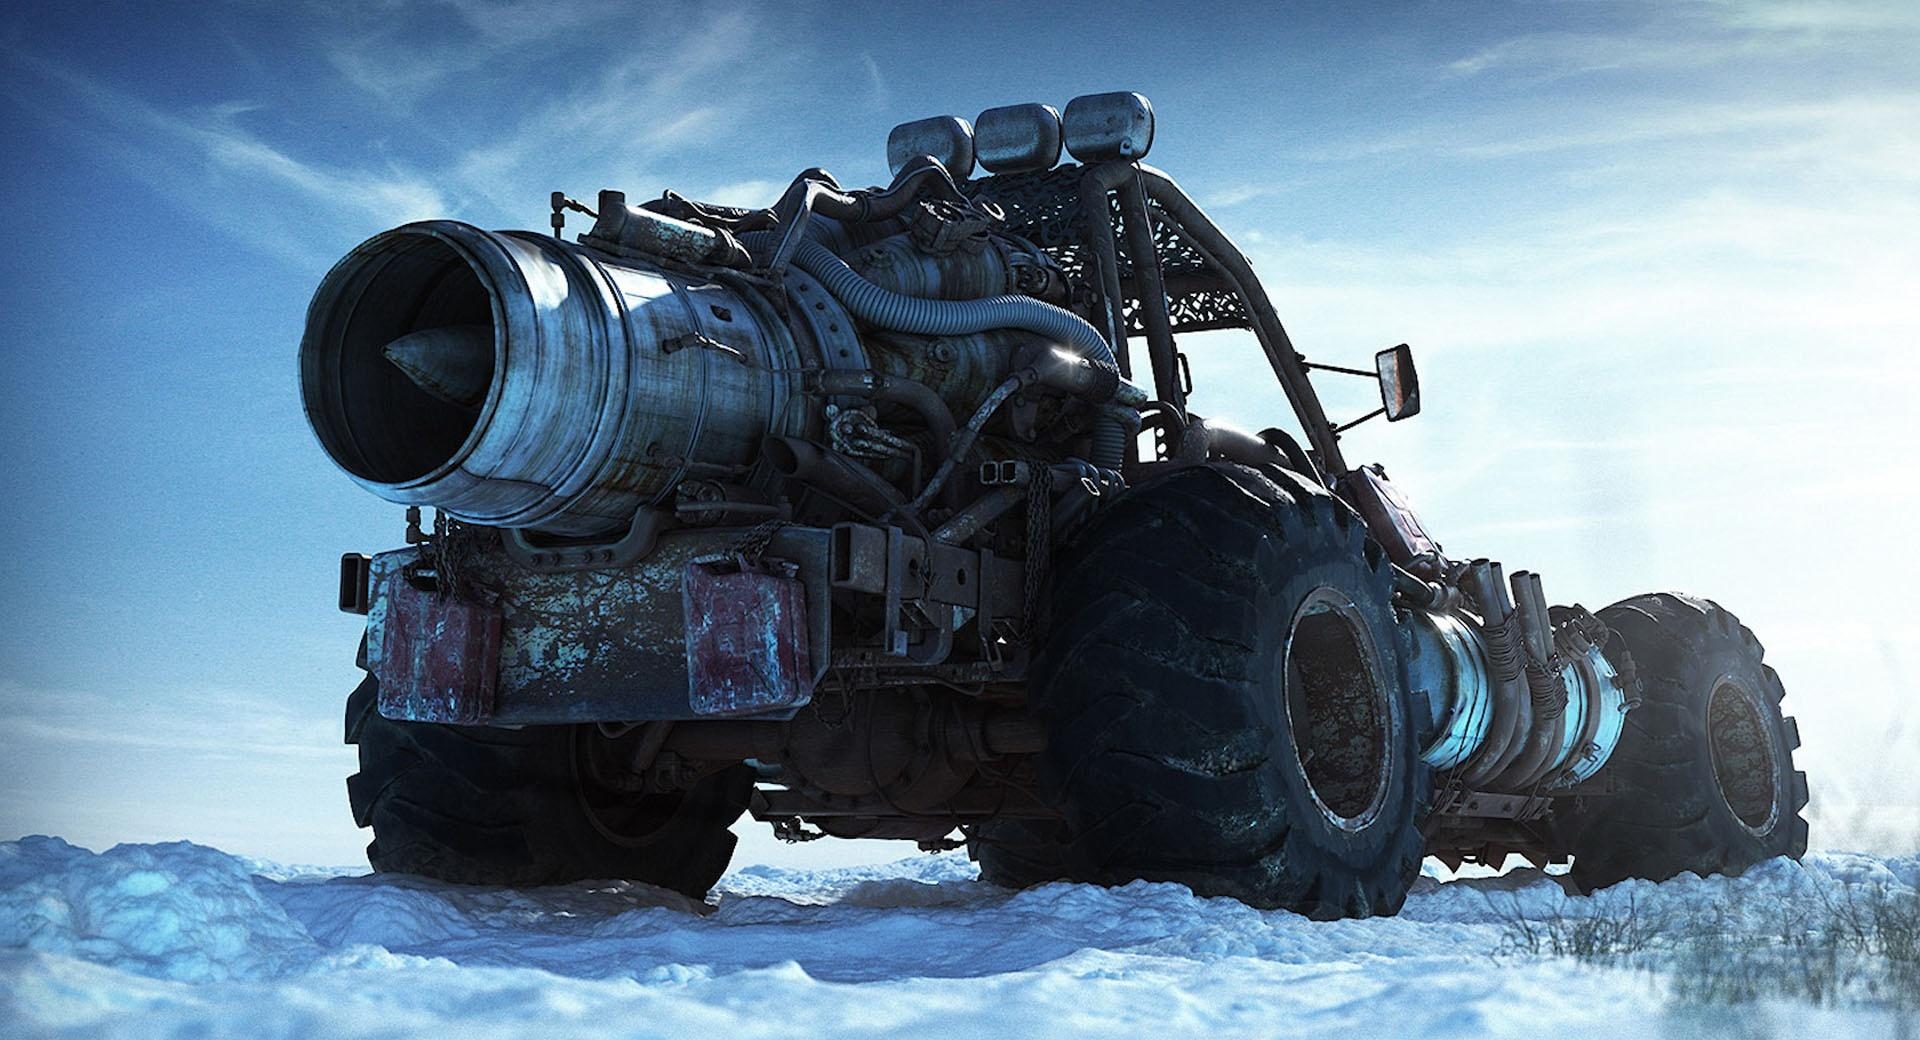 Nuclear Truck Fantasy wallpapers HD quality